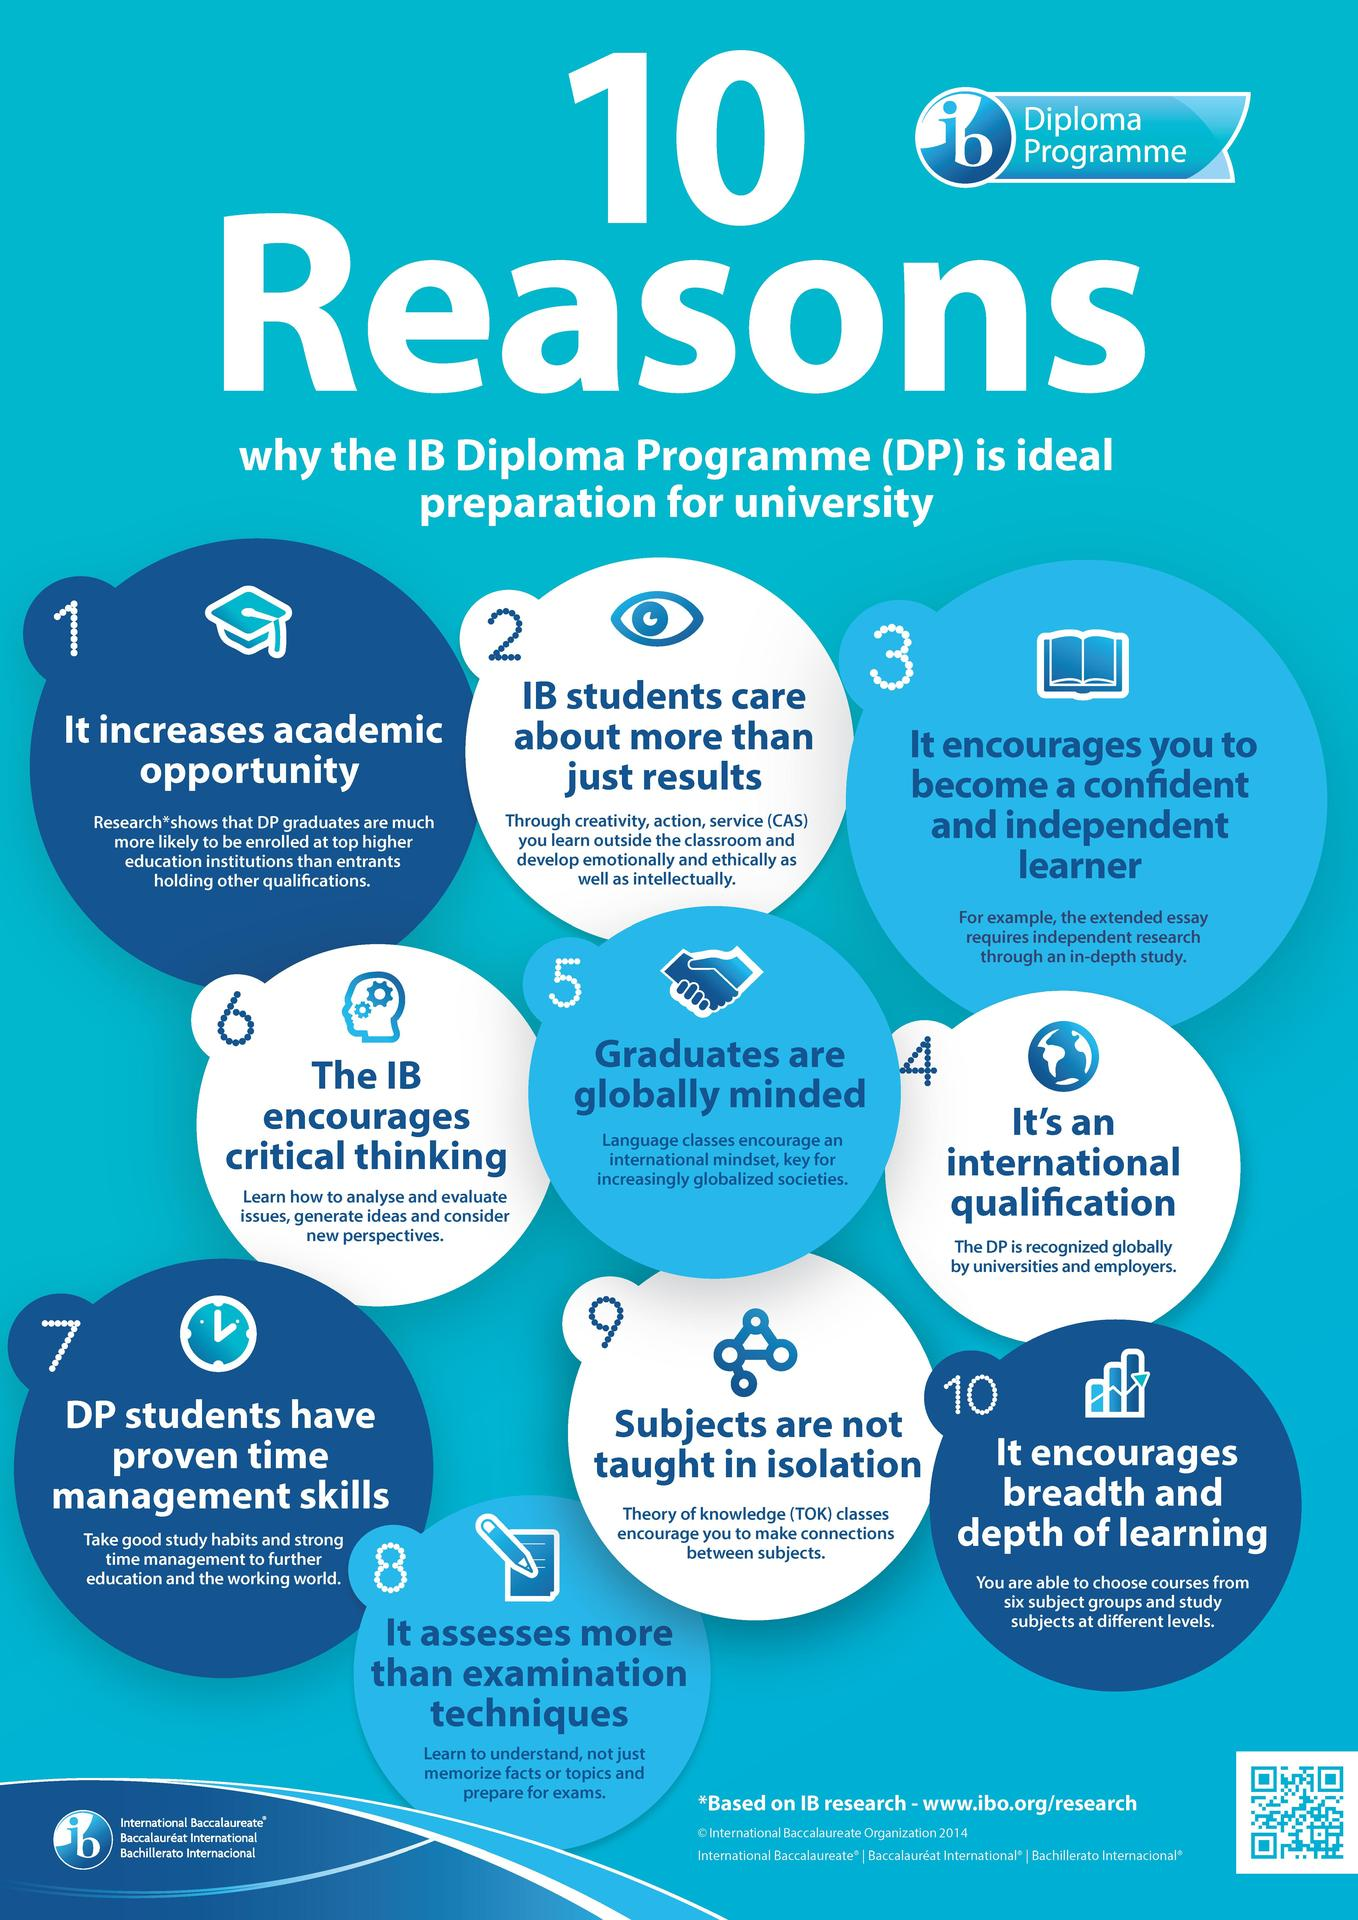 10 Reasons DP